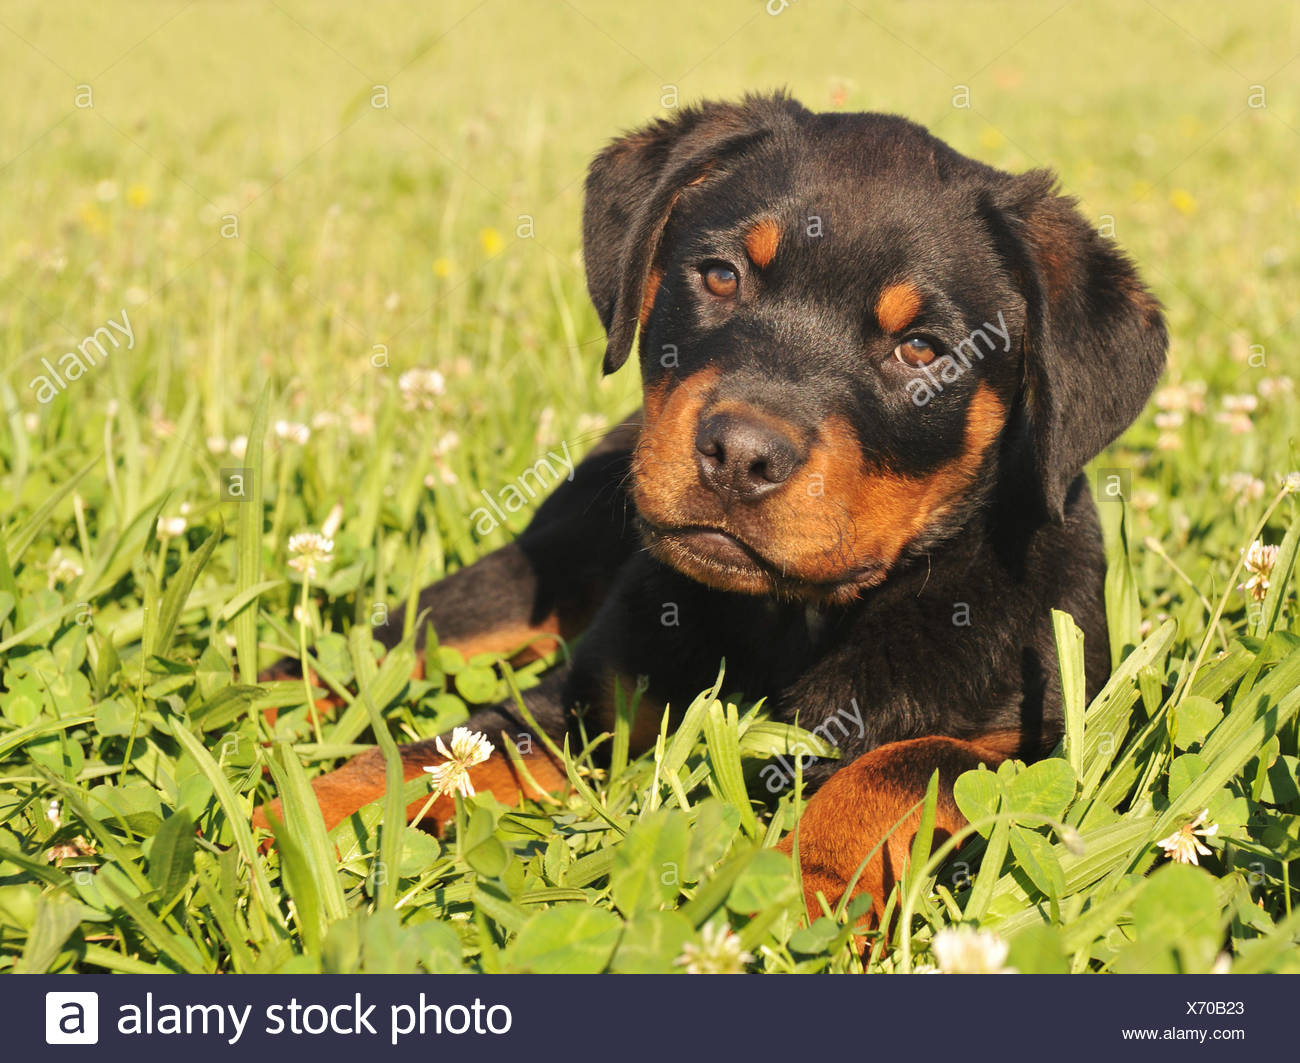 Pet Dog Puppy Cub Baby Rottweiler Young Younger Garden Animal Flower